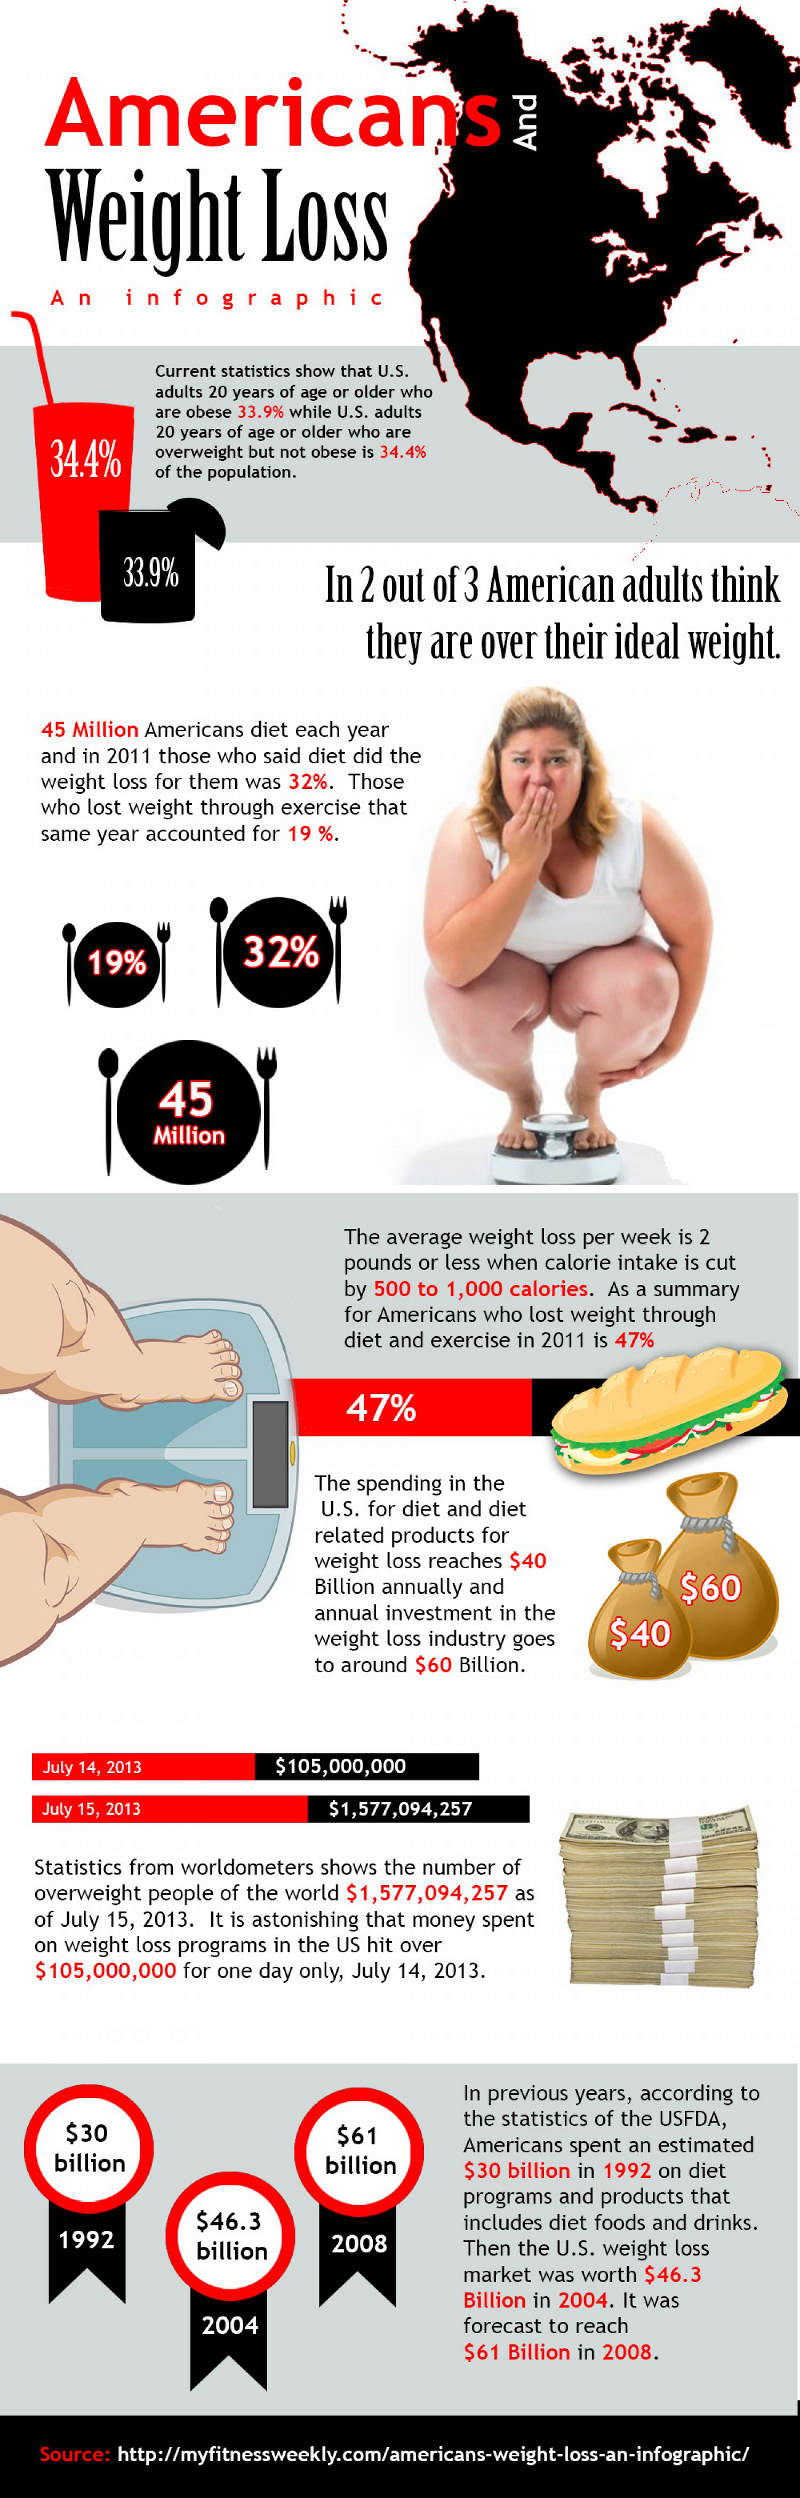 American Weight Loss Facts